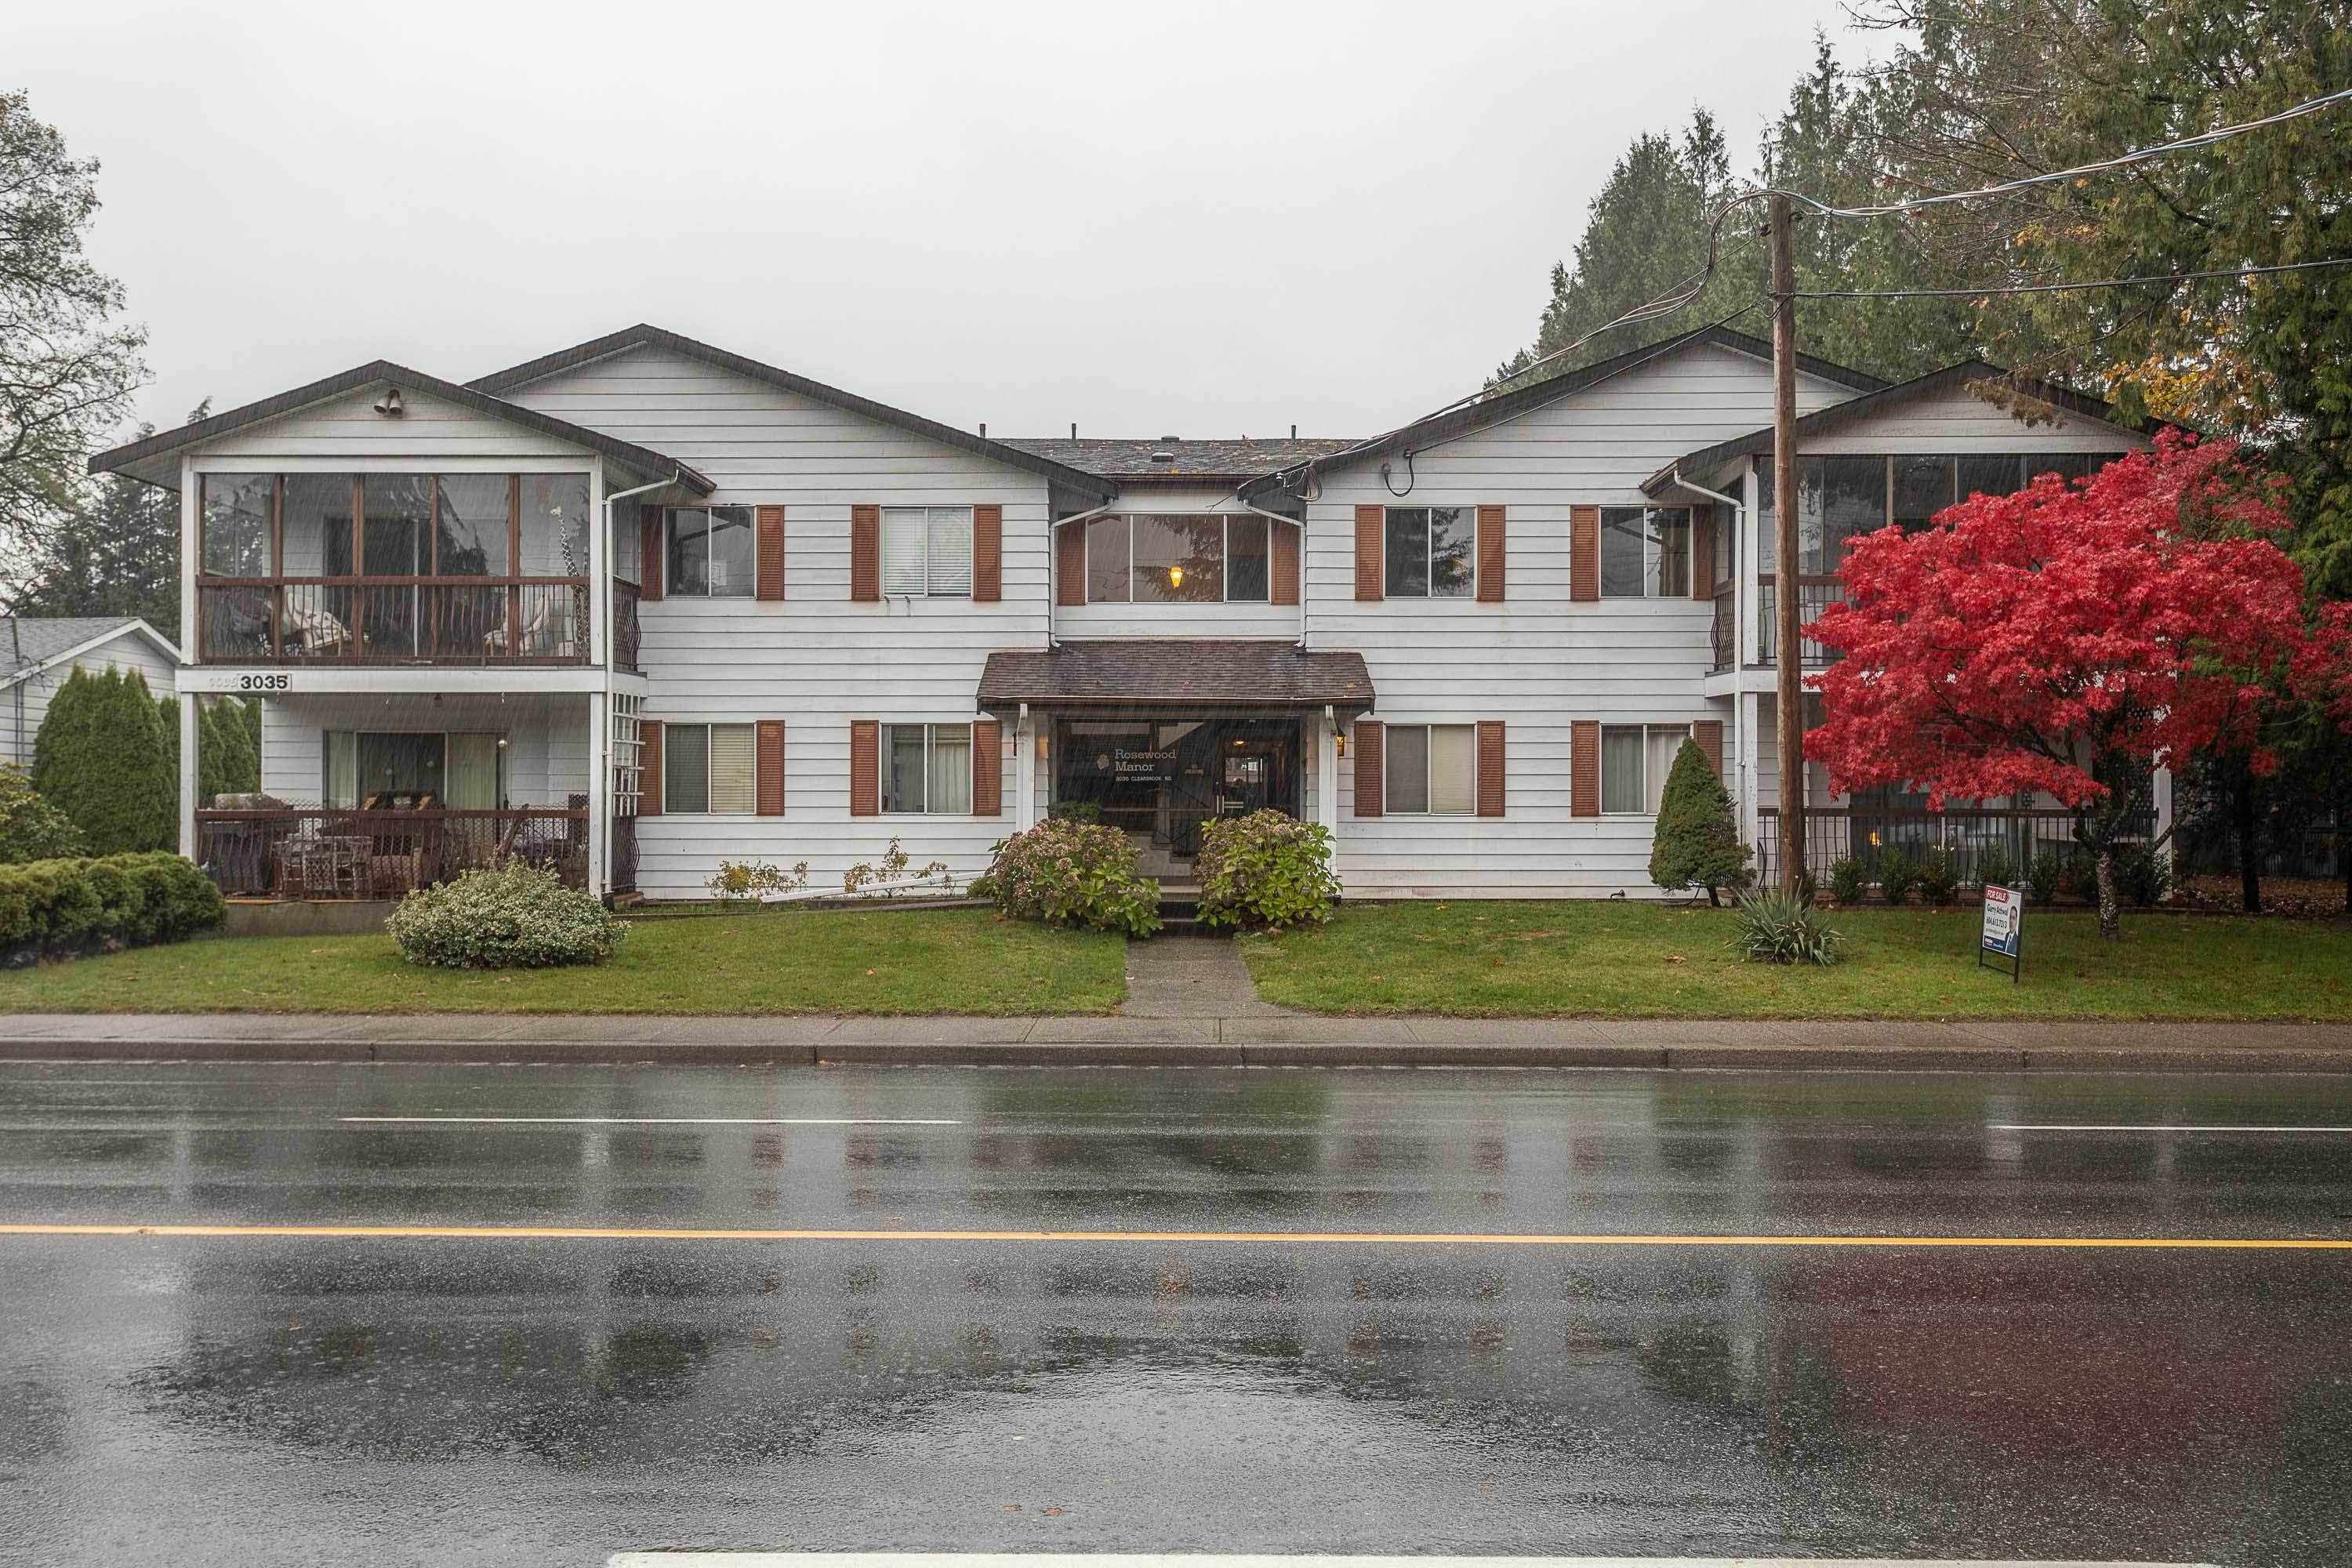 Main Photo: 204 3035 CLEARBROOK Road in Abbotsford: Abbotsford West Condo for sale : MLS®# R2617506